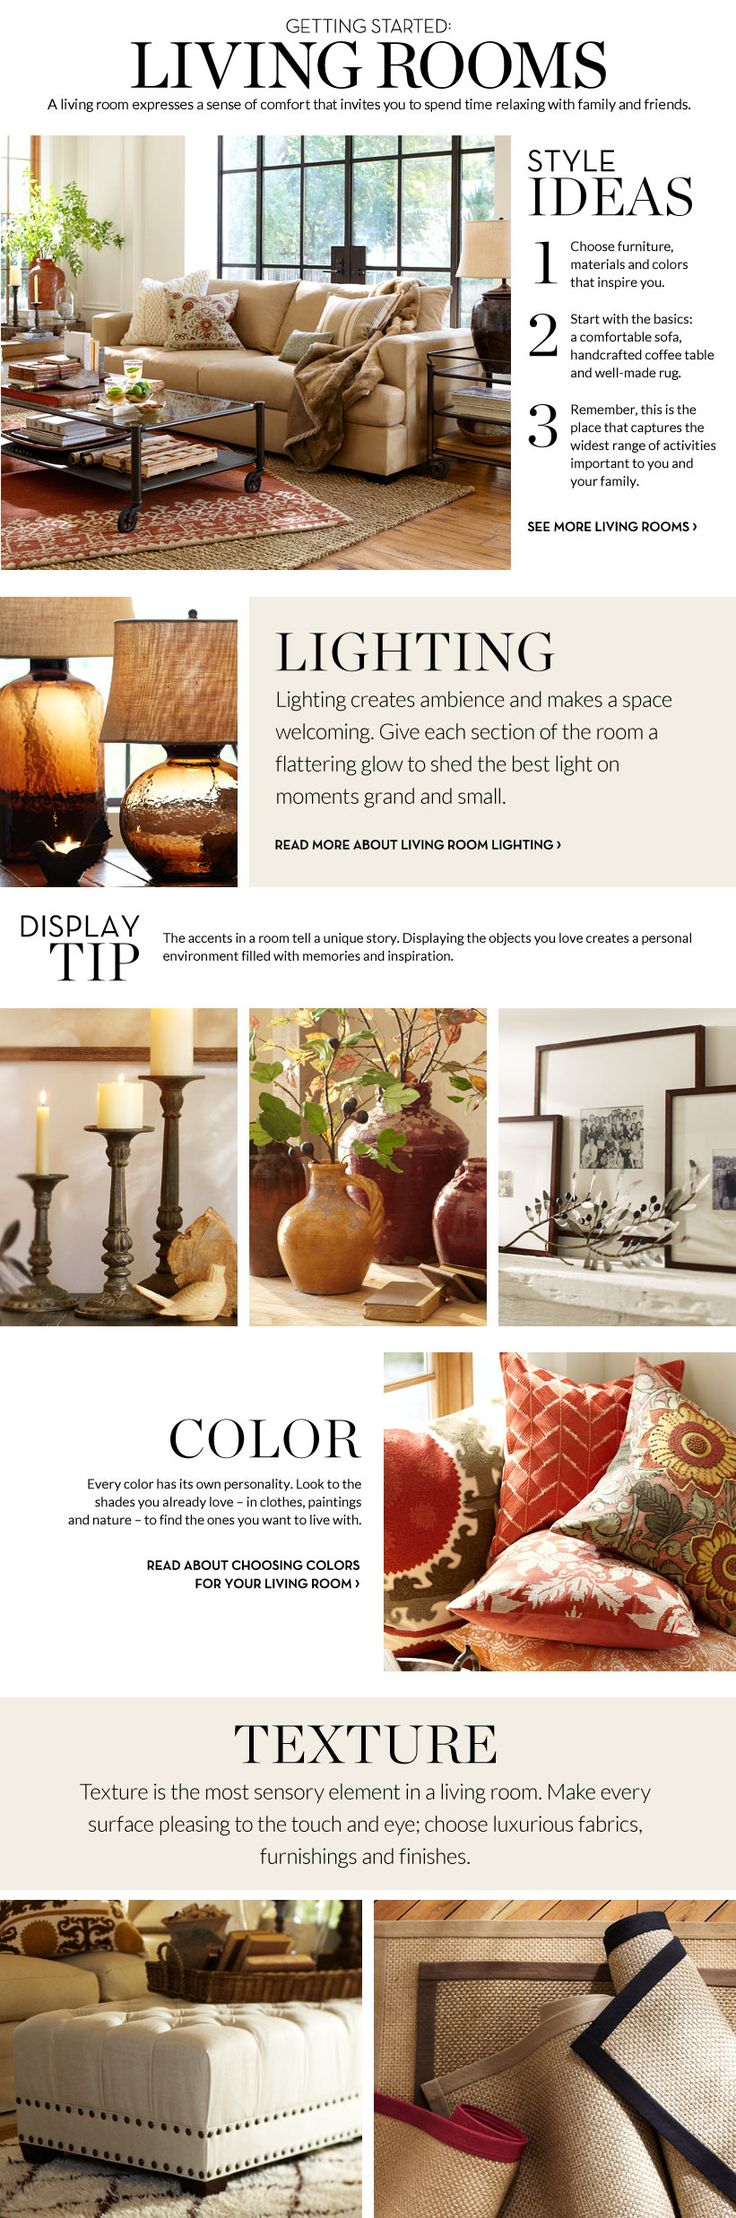 Living Room Inspiration & How to Decorate Living Room | Pottery Barn  Red and brown and yellow colors